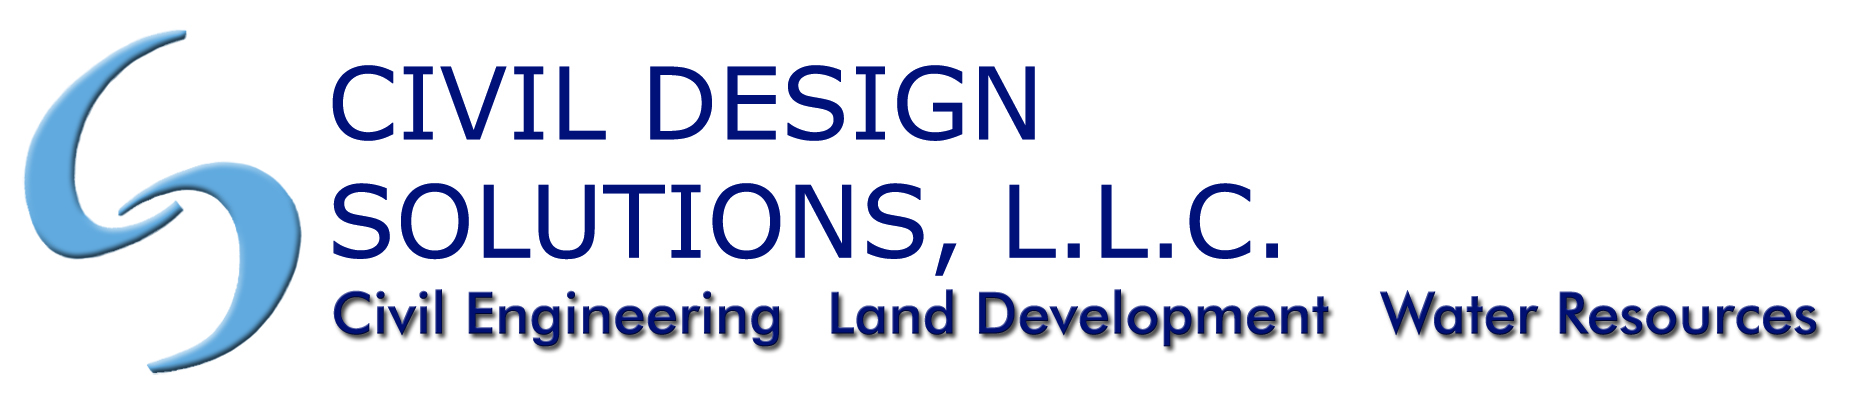 Civil Design Solutions